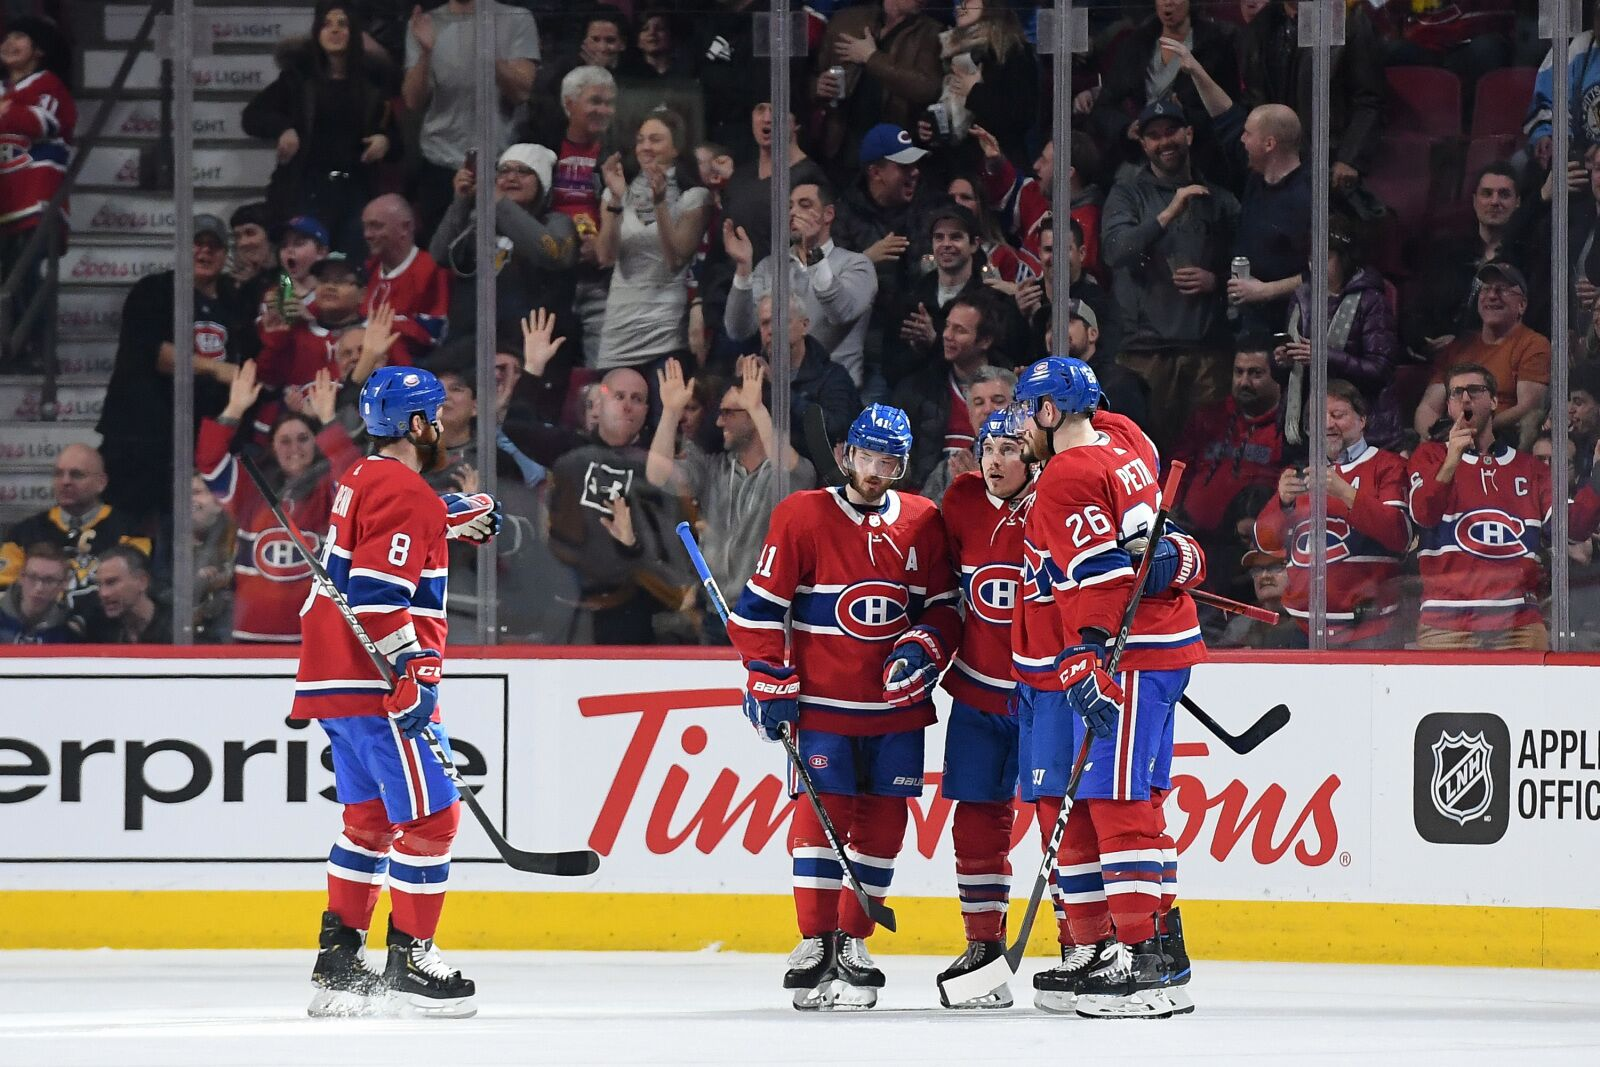 Playoff Watch: The Montreal Canadiens aren't in the best position